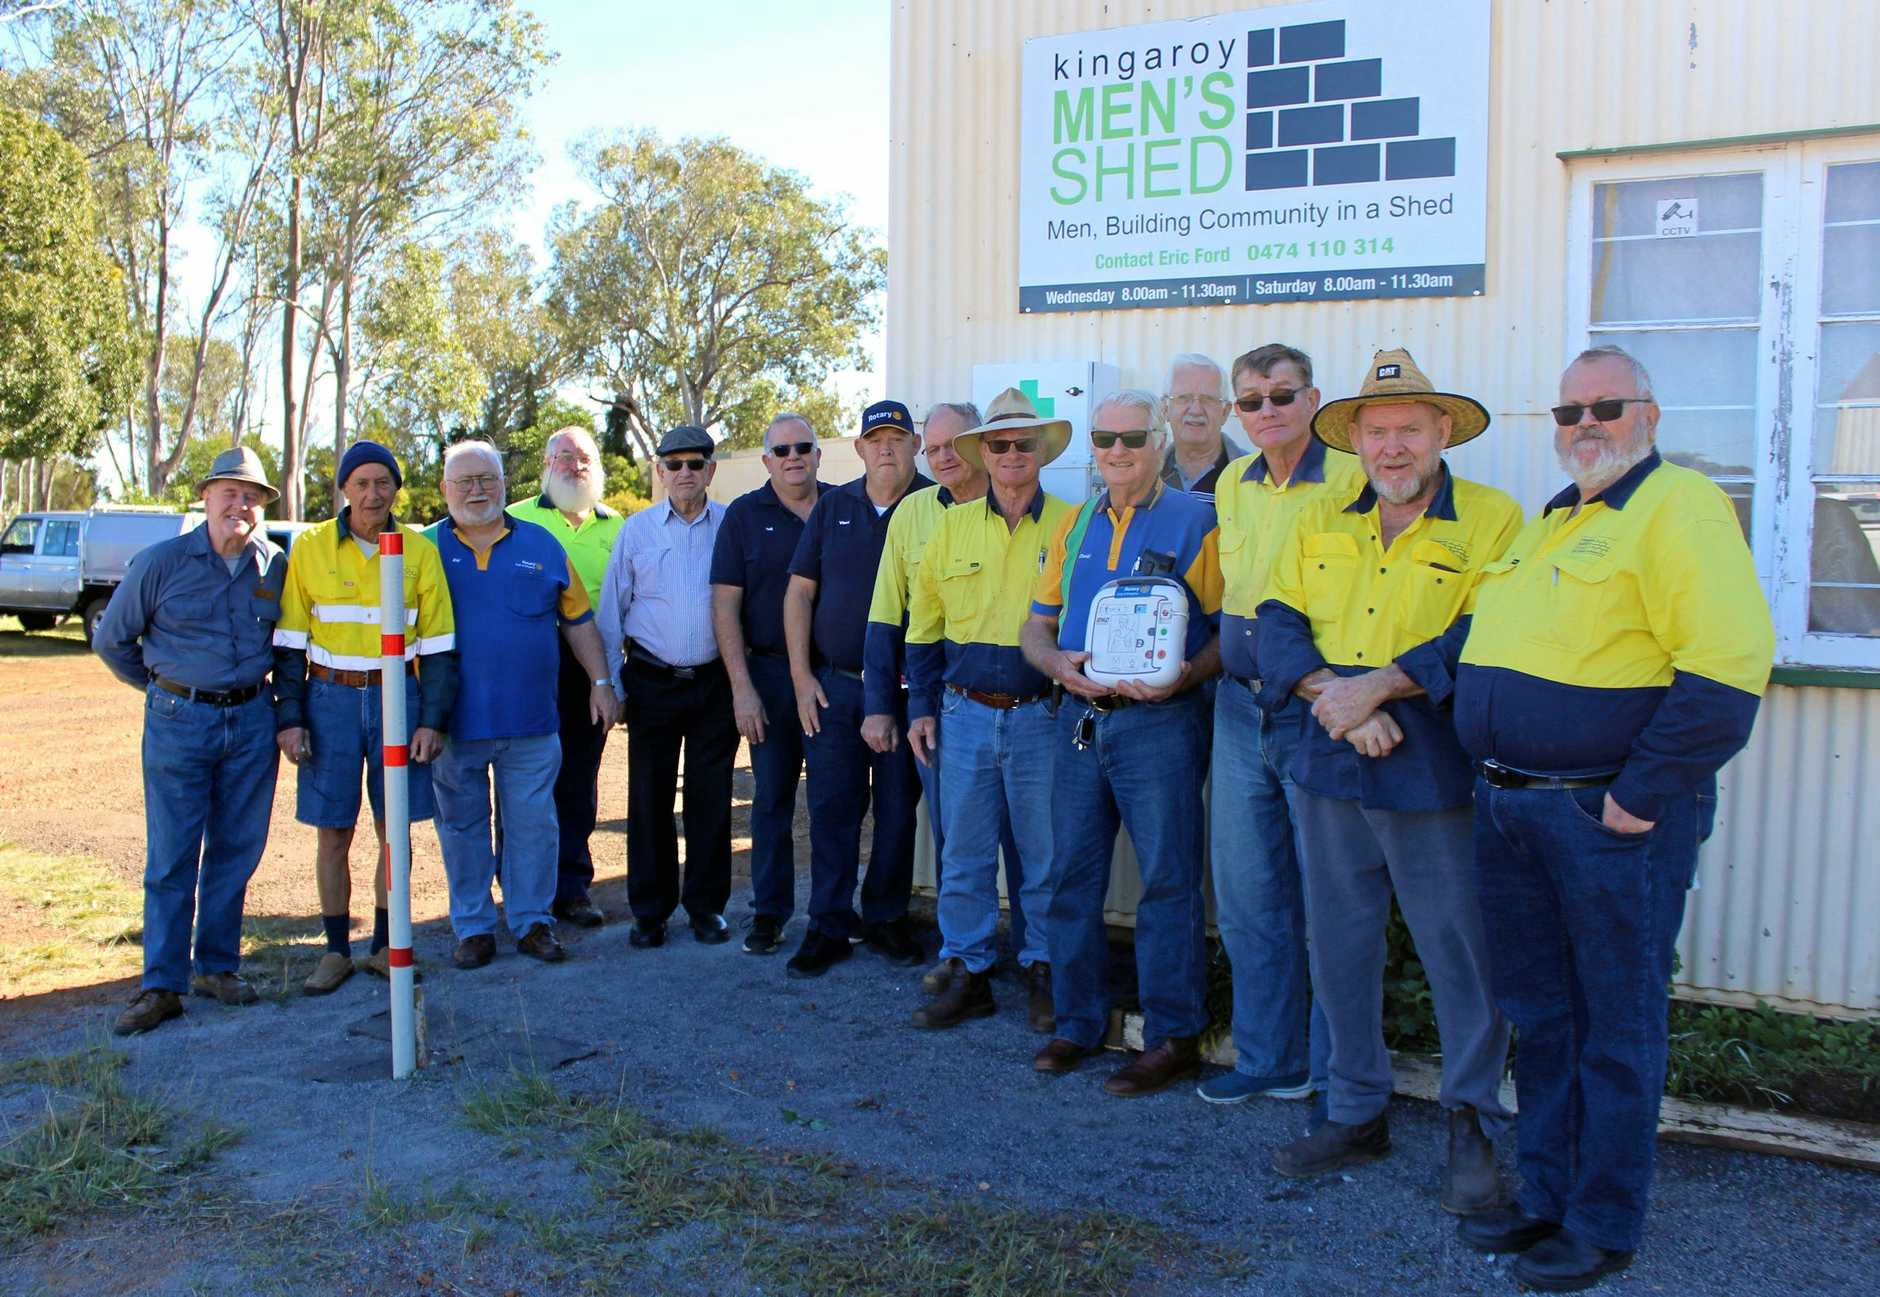 LIFE-SAVER: Members of the Kingaroy Rotary Club and Men's Shed gather to celebrate the instalment of the defibrillator.